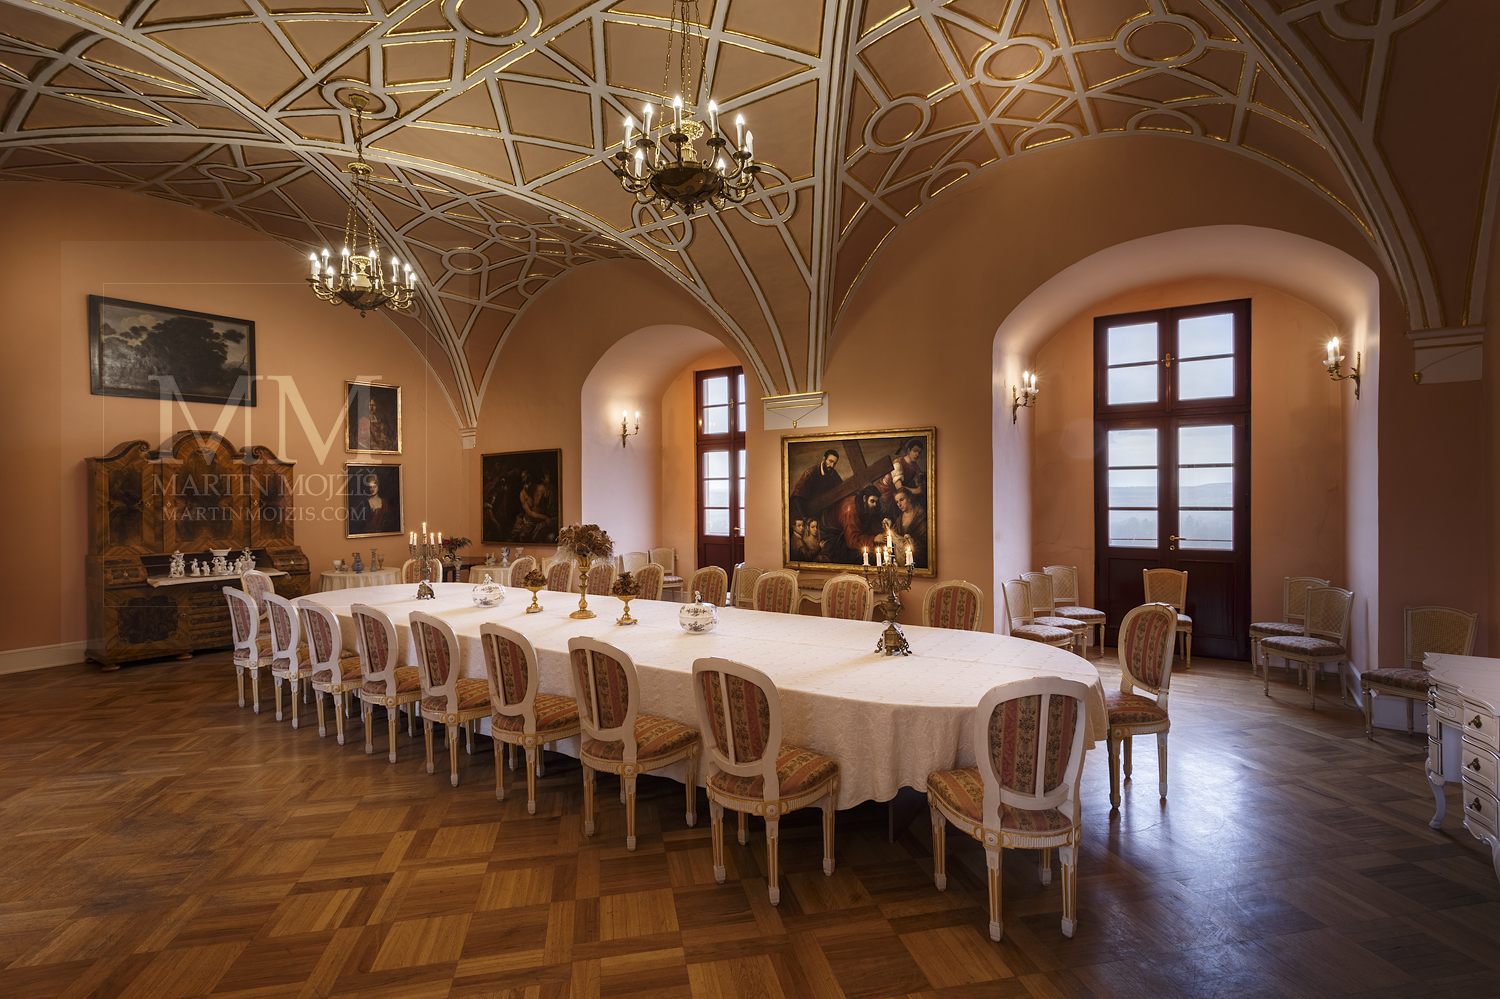 Chateau Melnik – large dining room. Professional photography of architecture - interiors.